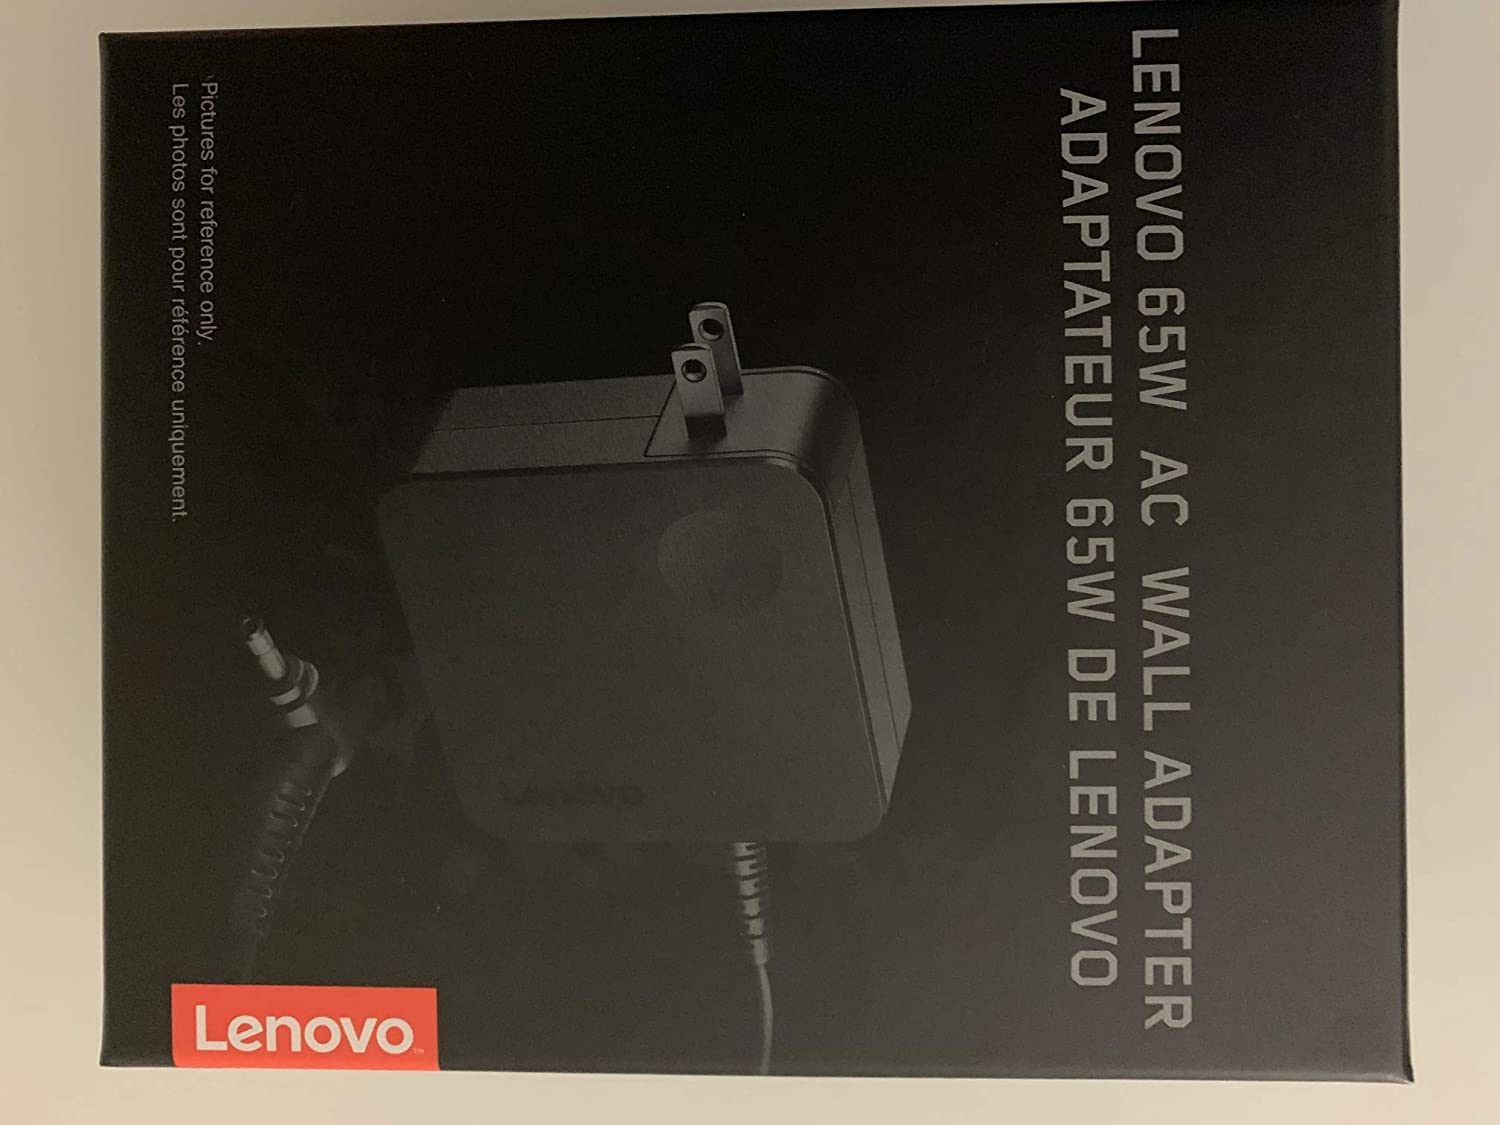 Lenovo 65W AC Wall Adapter P/N: GX20L29355 for Lenovo Notebooks: Ideapad Flex 4-1480-80VD, Ideapad Flex 4-1580-80VE, Ideapad 510S, Compatible with P/N: 5A10K78745, ADLX65CLGU2A - Retail Box.